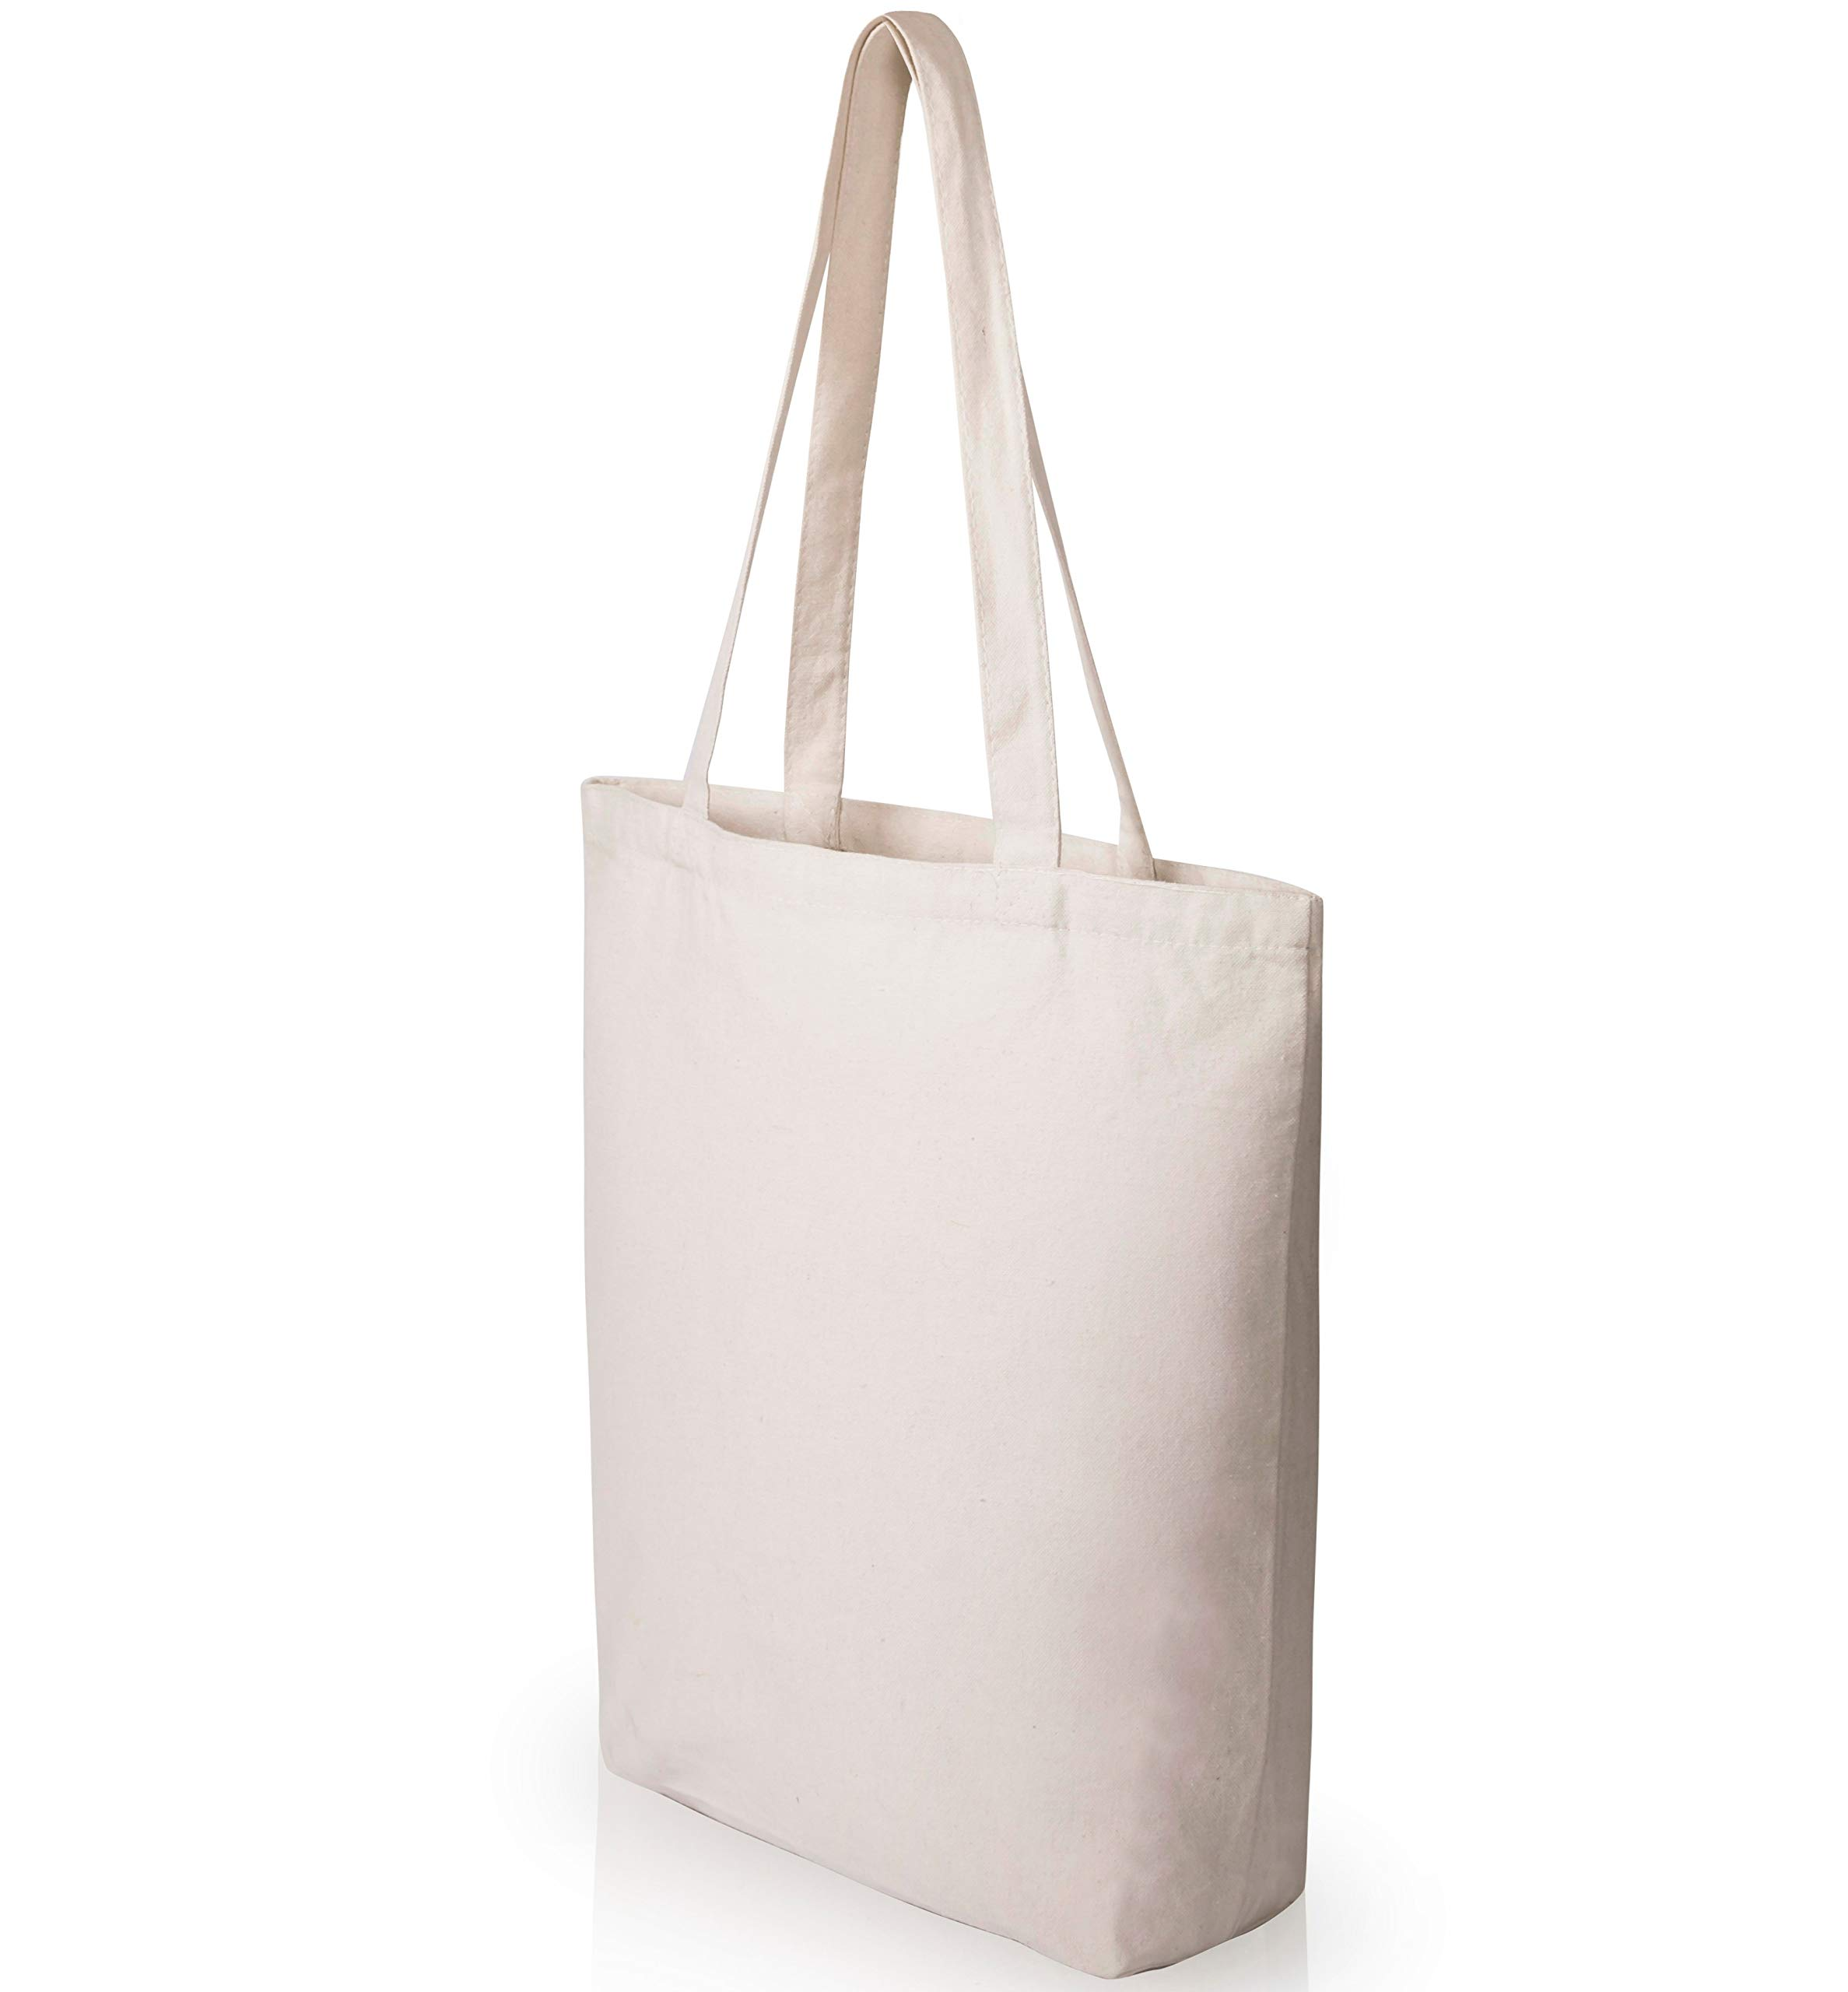 Heavy Duty and Strong Large Natural Canvas Tote Bags with Bottom Gusset for Crafts, Shopping, Groceries, Books, Welcome Bag, Diaper Bag, Beach, and More! -1 Bag- (15x14x4 Inches)